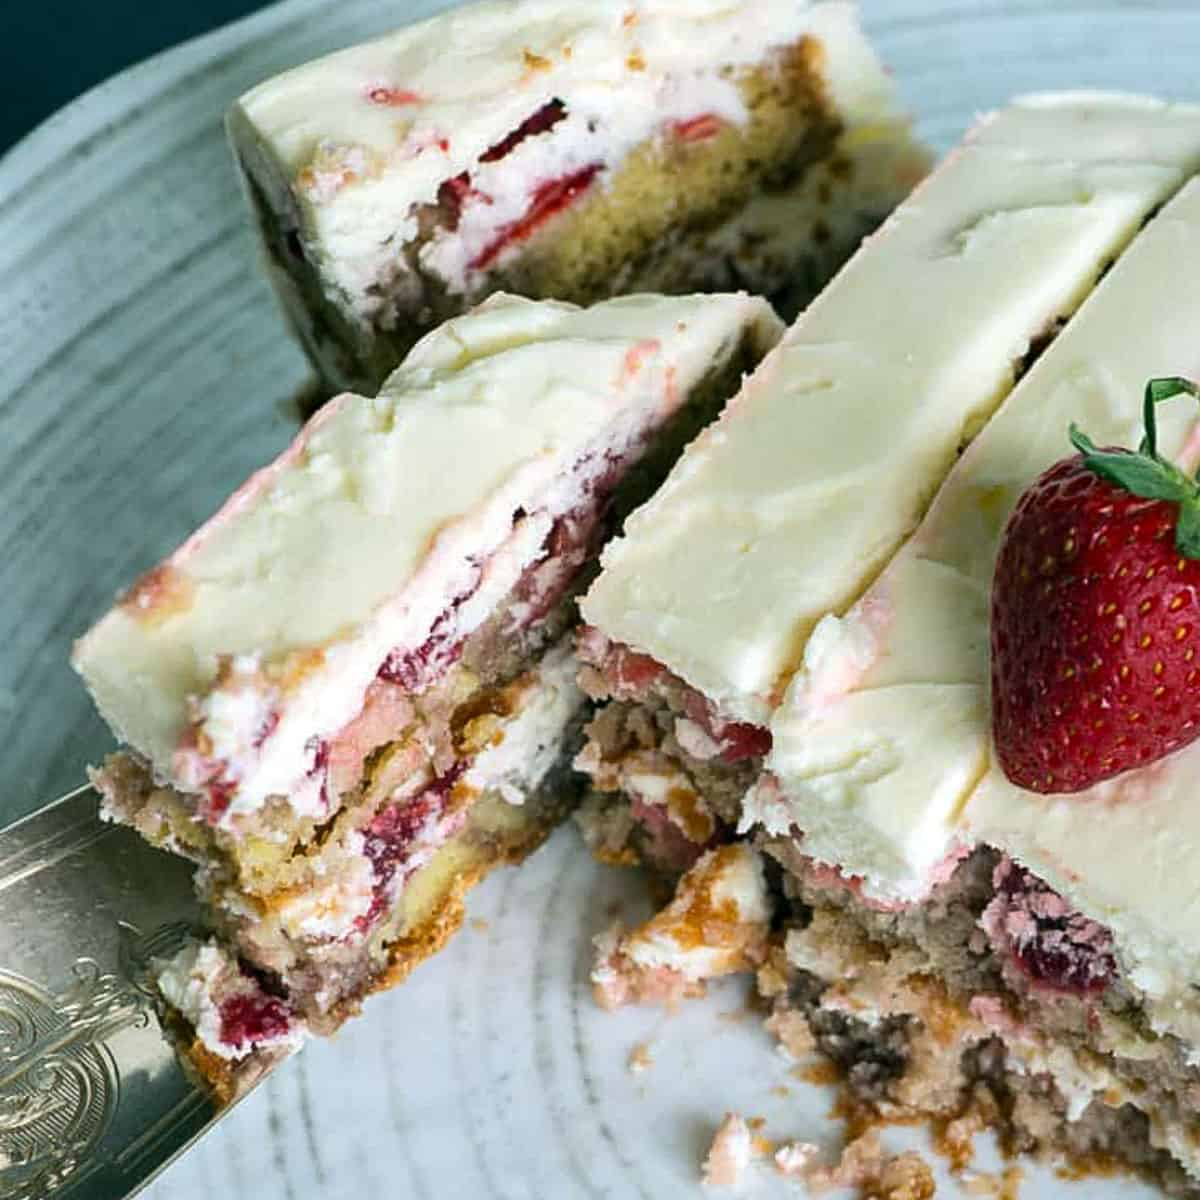 A slice being pulled out of a strawberry cake